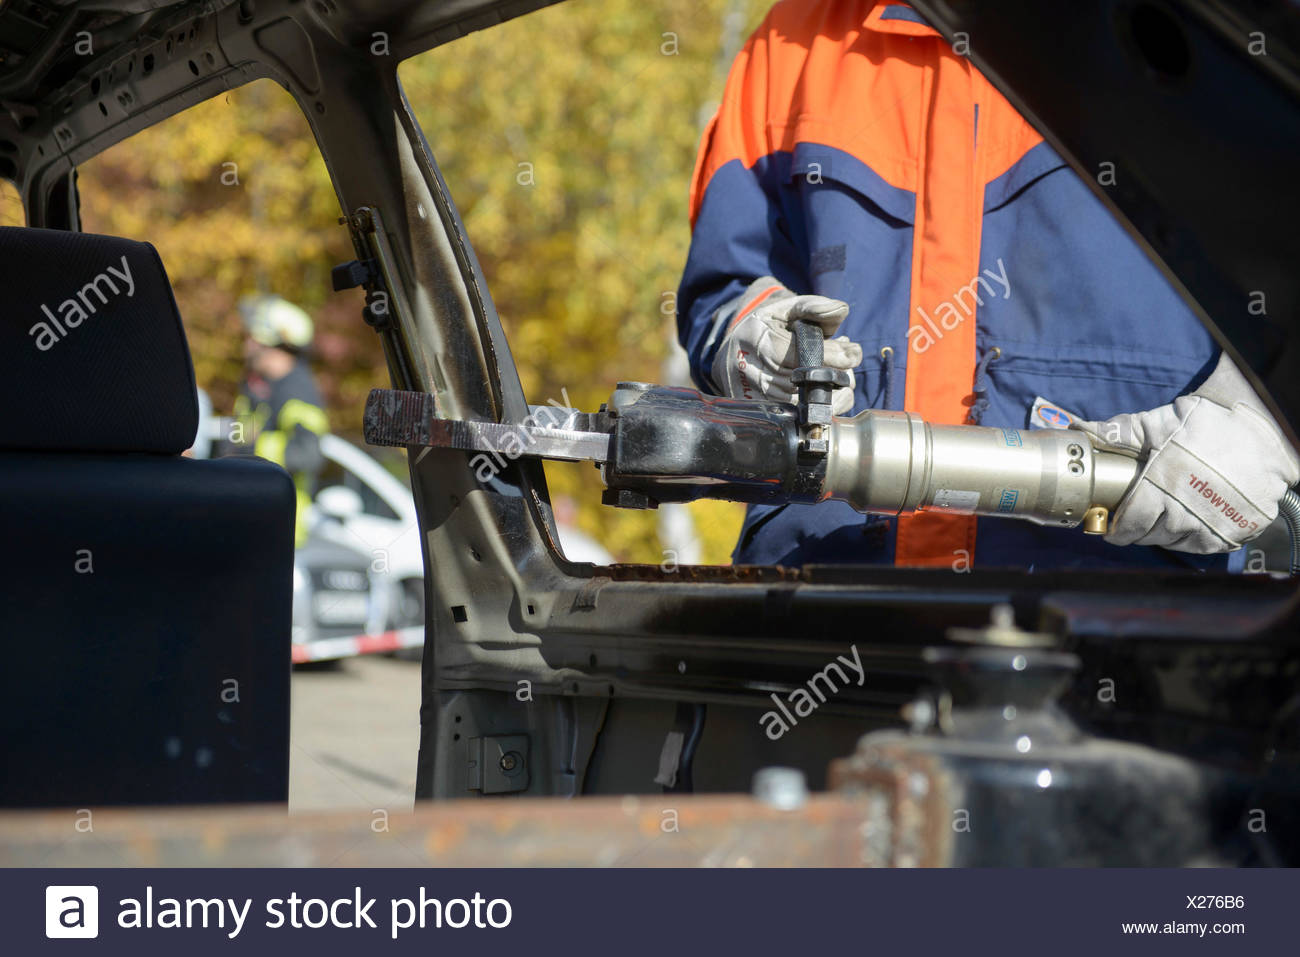 Firefighter working with hydraulic rescue equipment, final fire service drill of the young Stuttgart firefighters in autumn - Stock Image